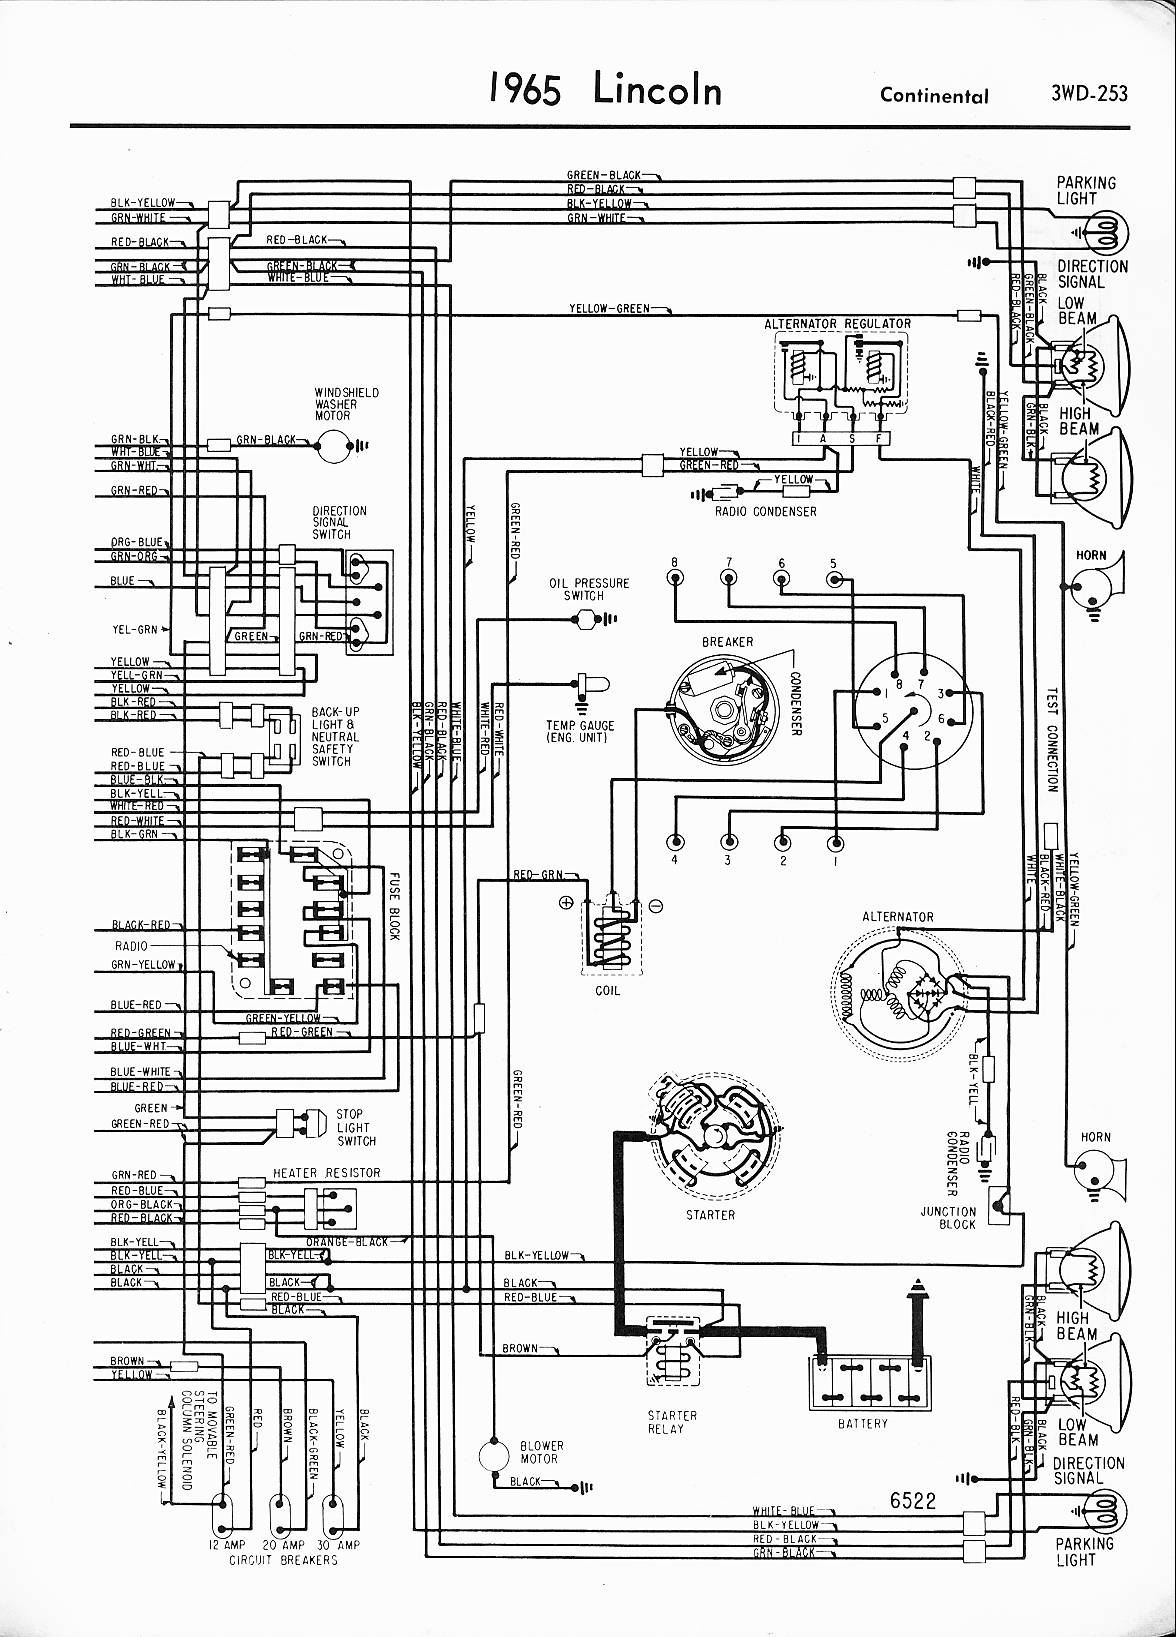 1975 lincoln continental wiring diagram